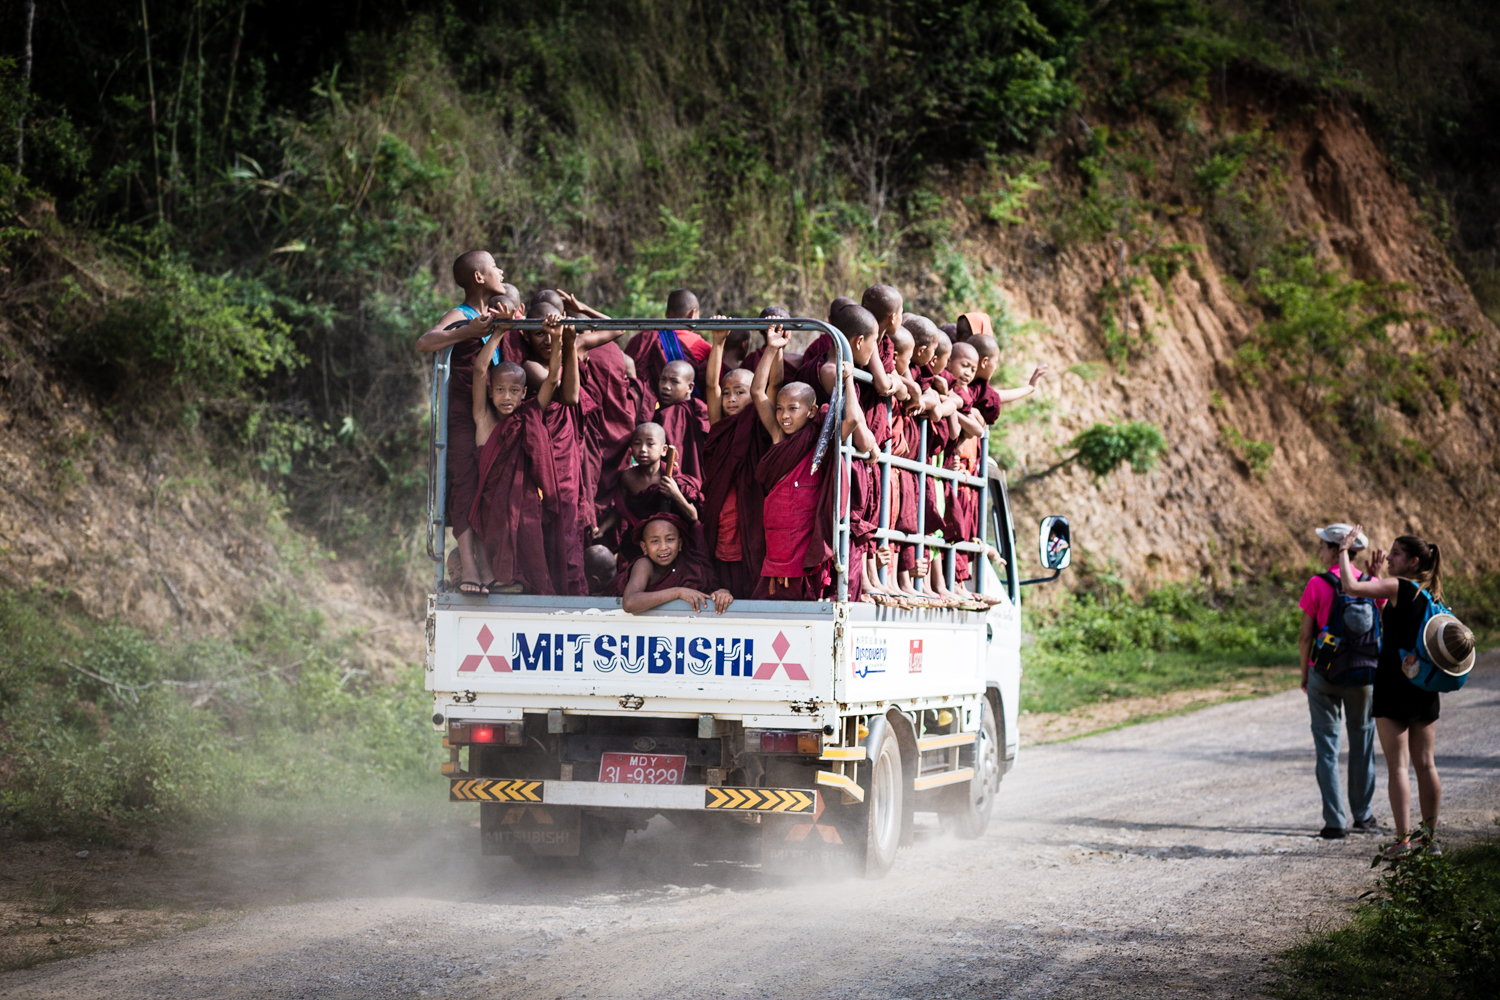 After we let the monastery, the monks passed on on their way somewhere.